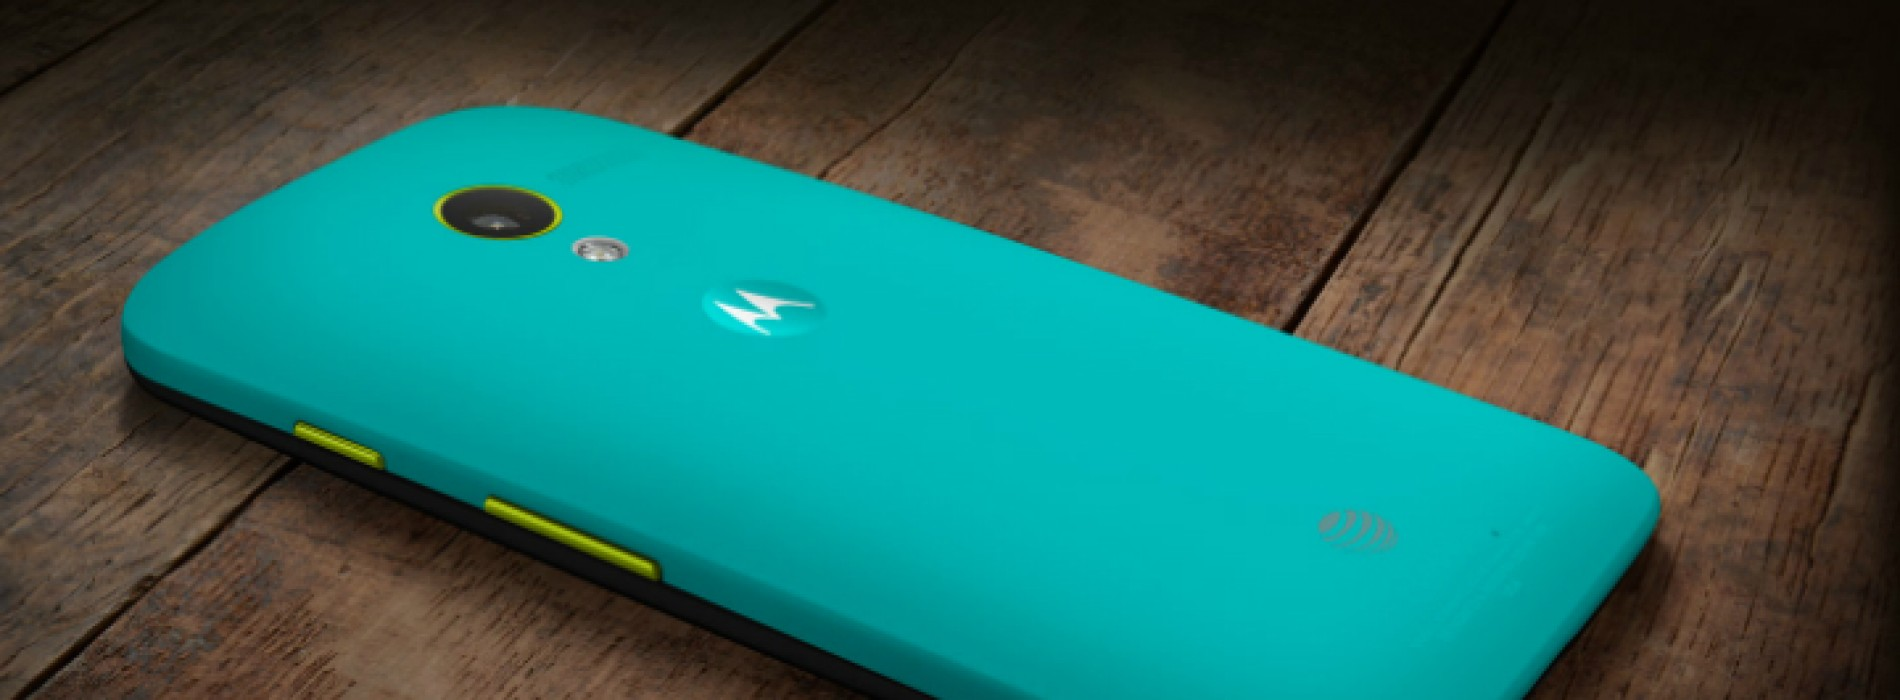 T-Mobile Moto X gets Android 4.4 KitKat